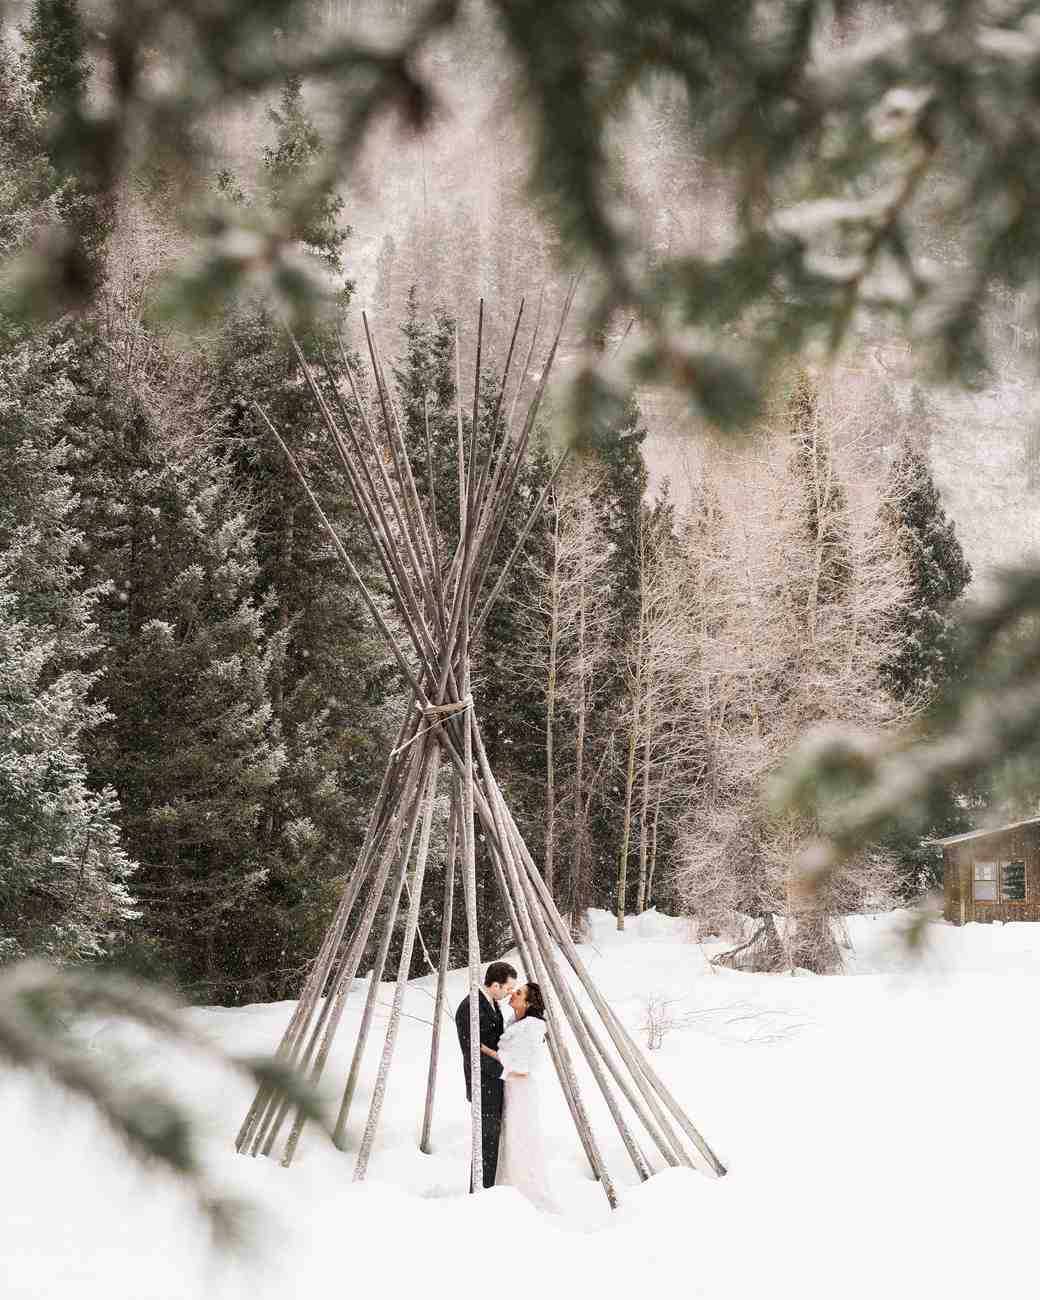 Couple Kissing in Snow Under Wooden Structure